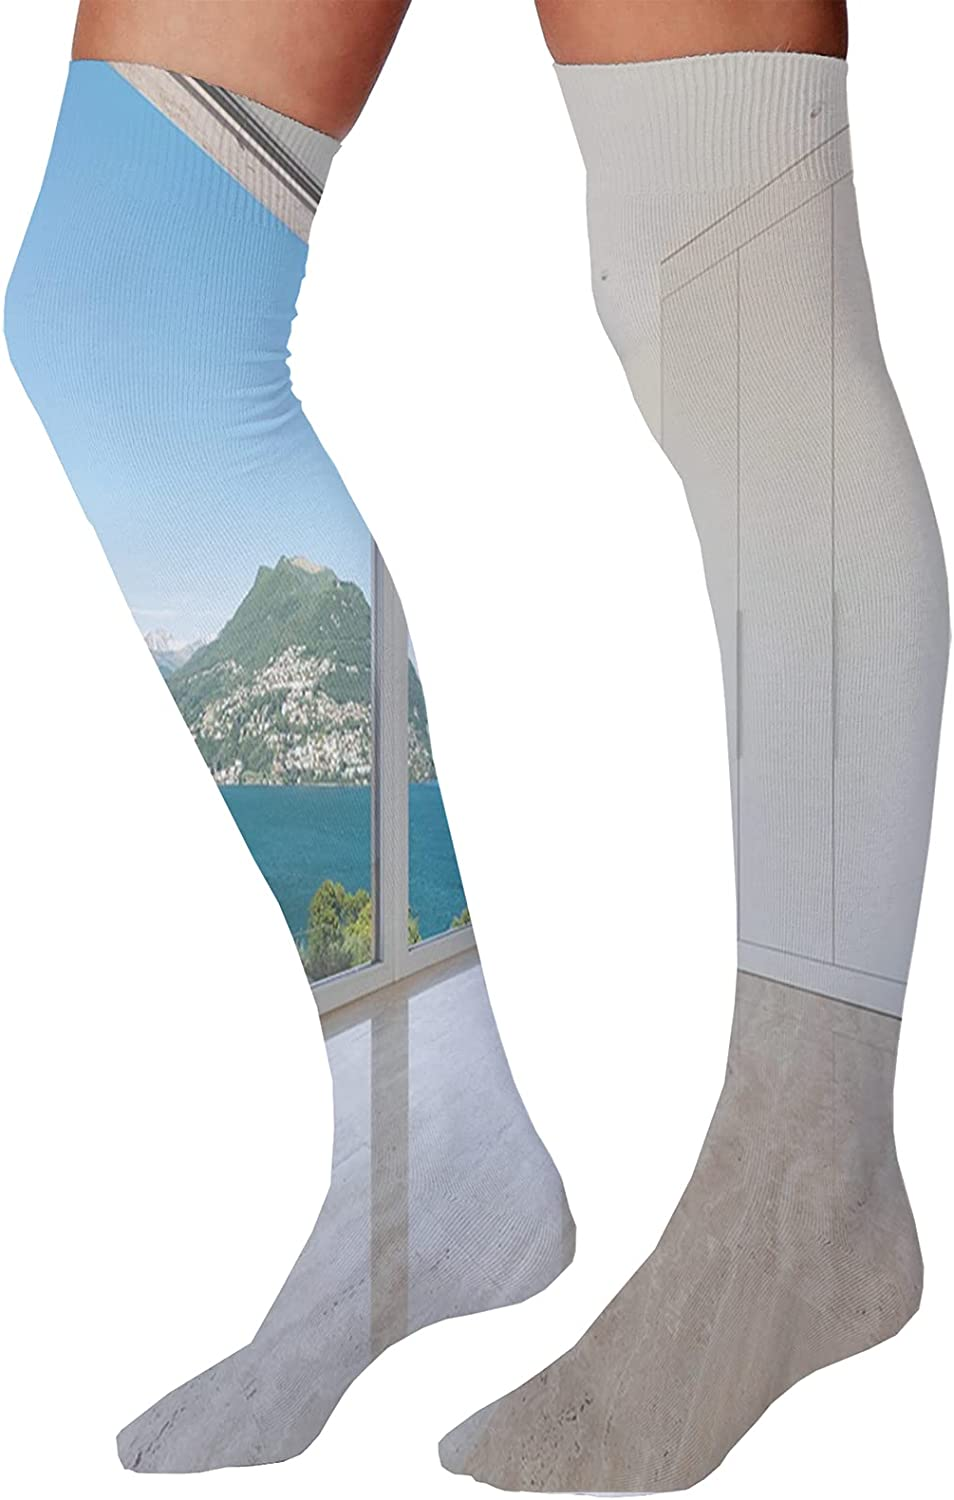 Men's and Women's Fun Socks,Inspiring Message About Family Life and Love on Dreamy Backdrop Wisdom